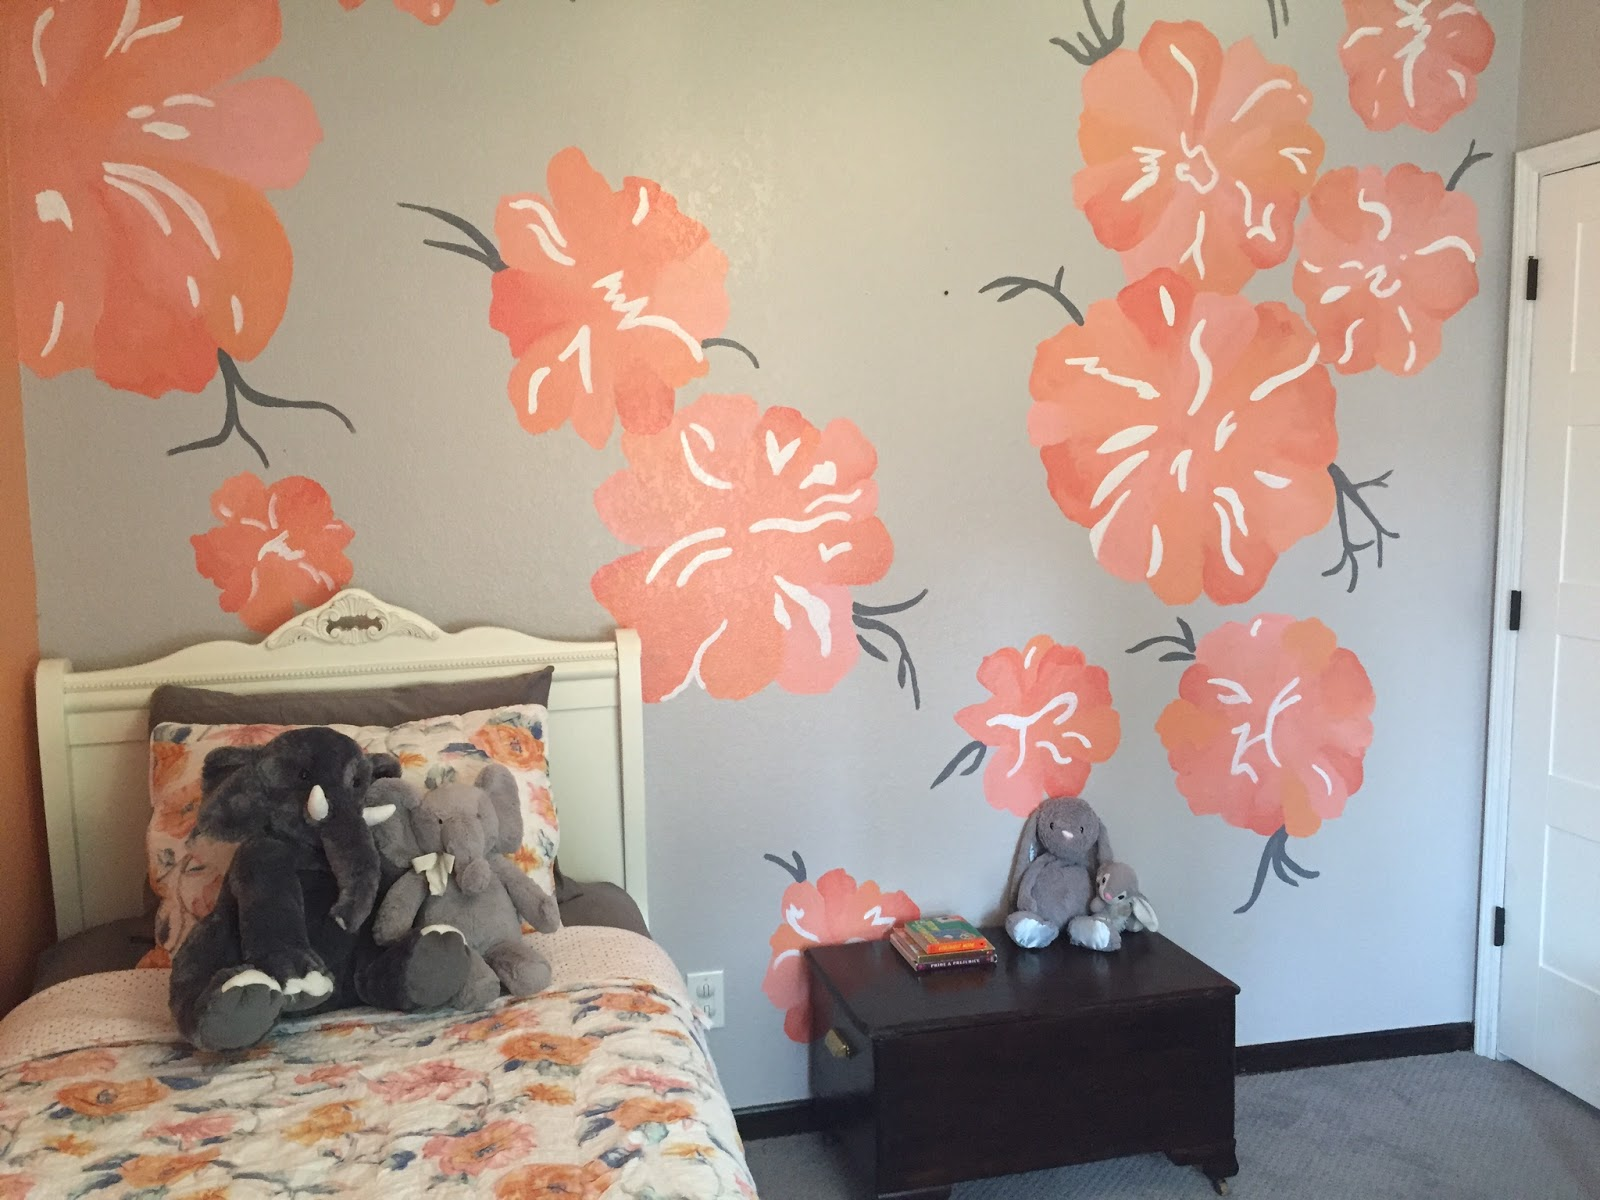 reimagined peony wall mural after having the beautiful birch tree mural painted in our son s nursery i wanted to add a mural to our daughter s room too her room felt a little bare